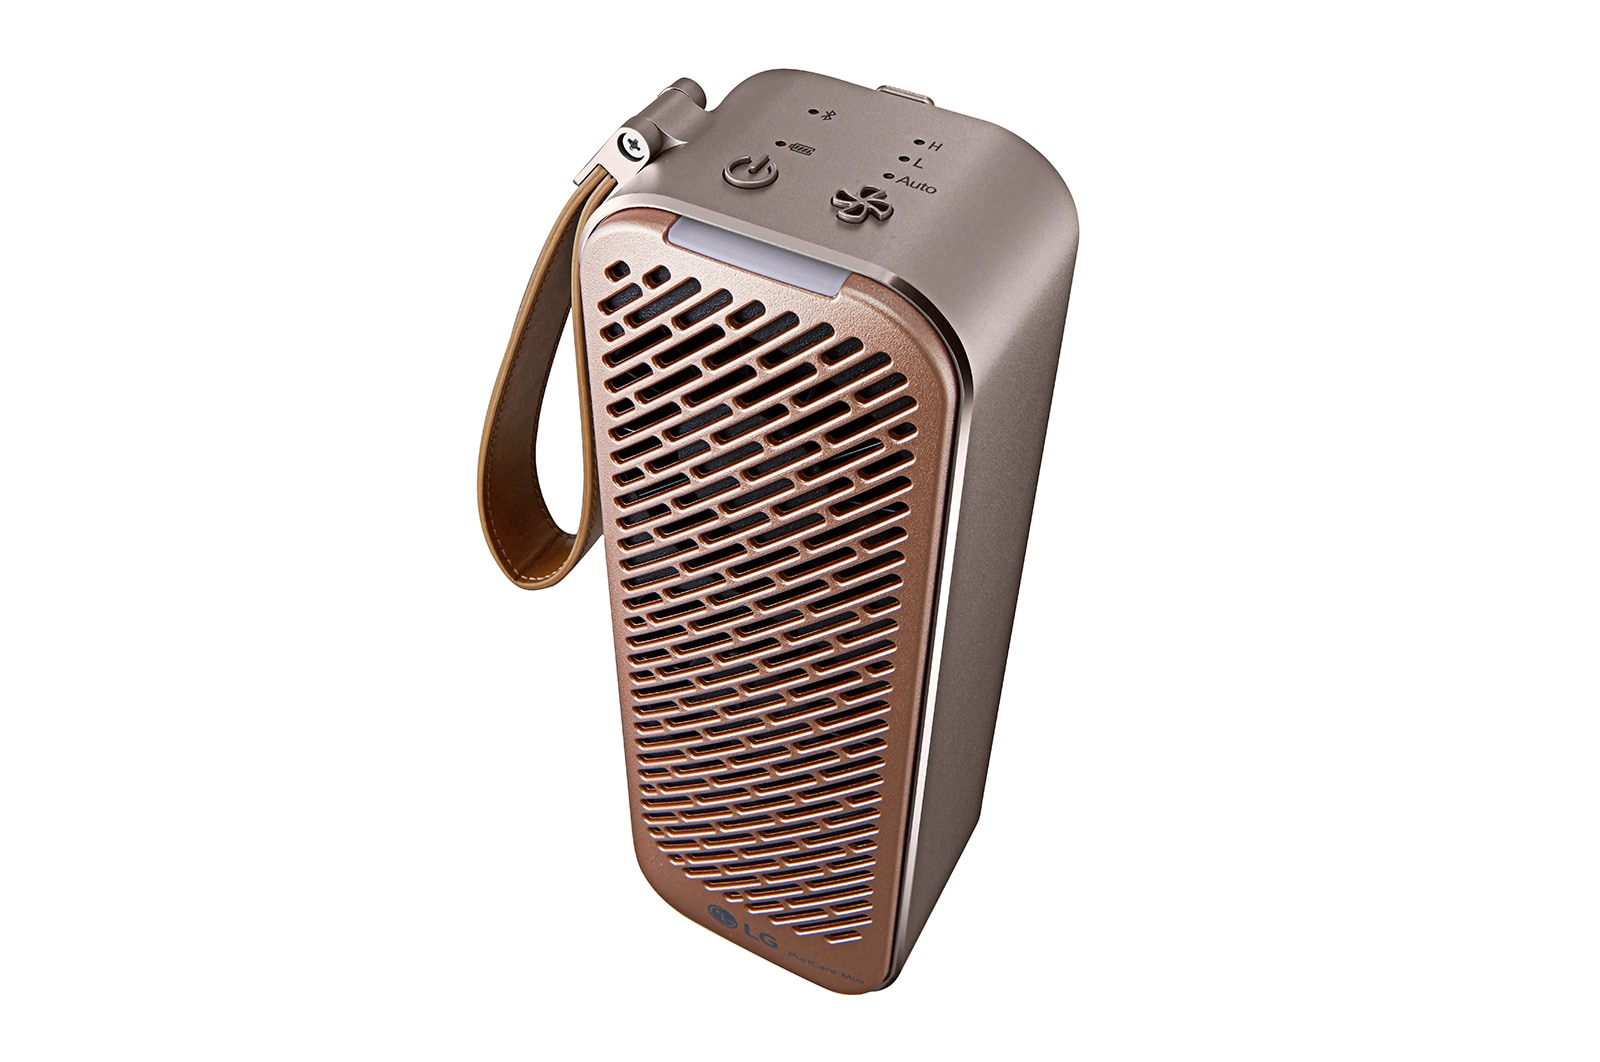 LG Mini Air Purifier